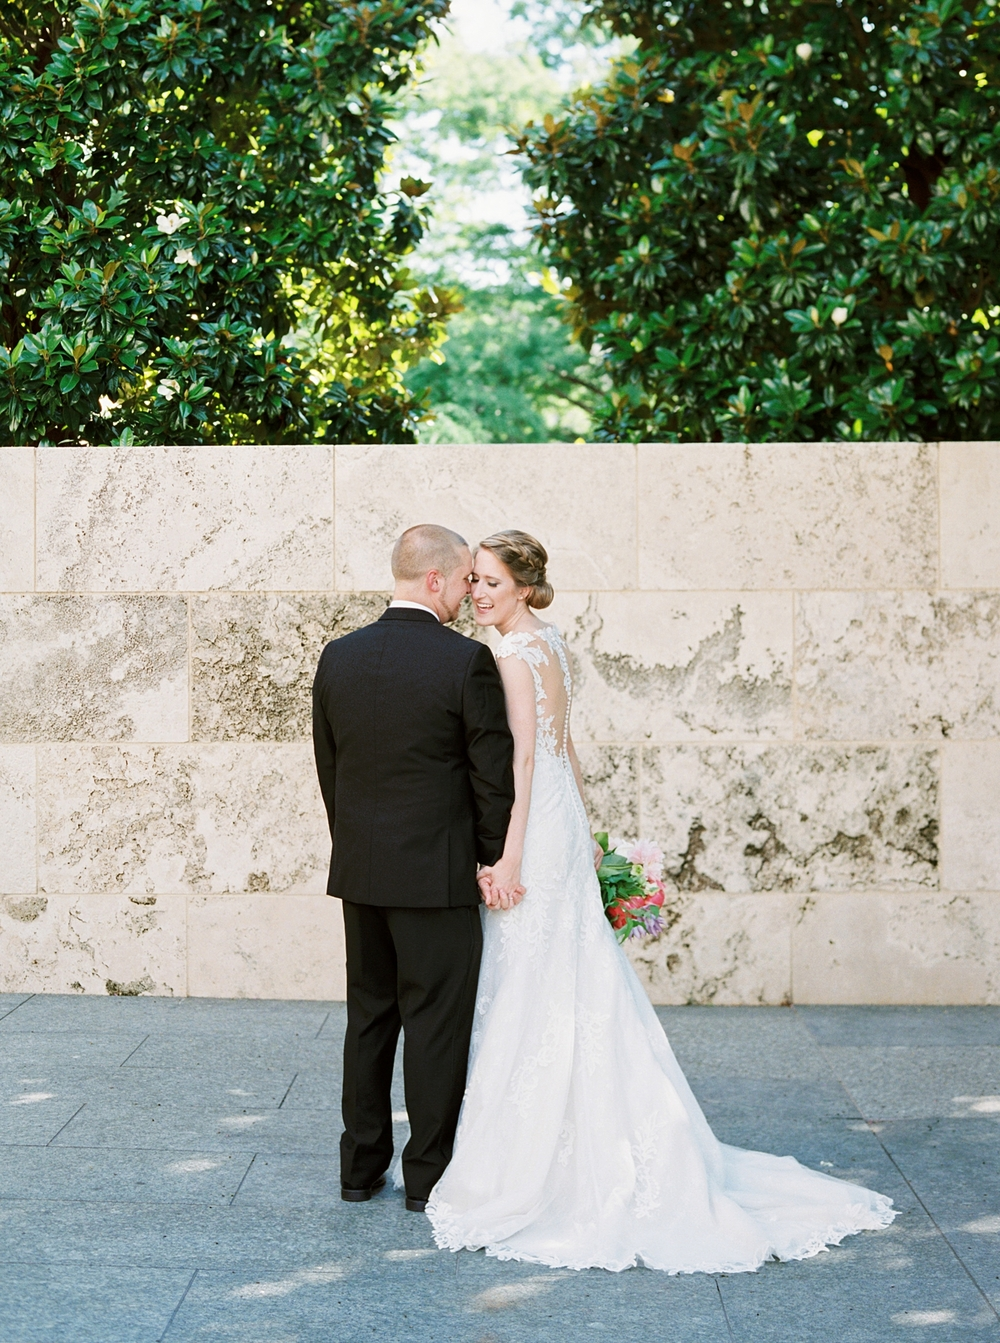 Nasher Sculpture Wedding Photography